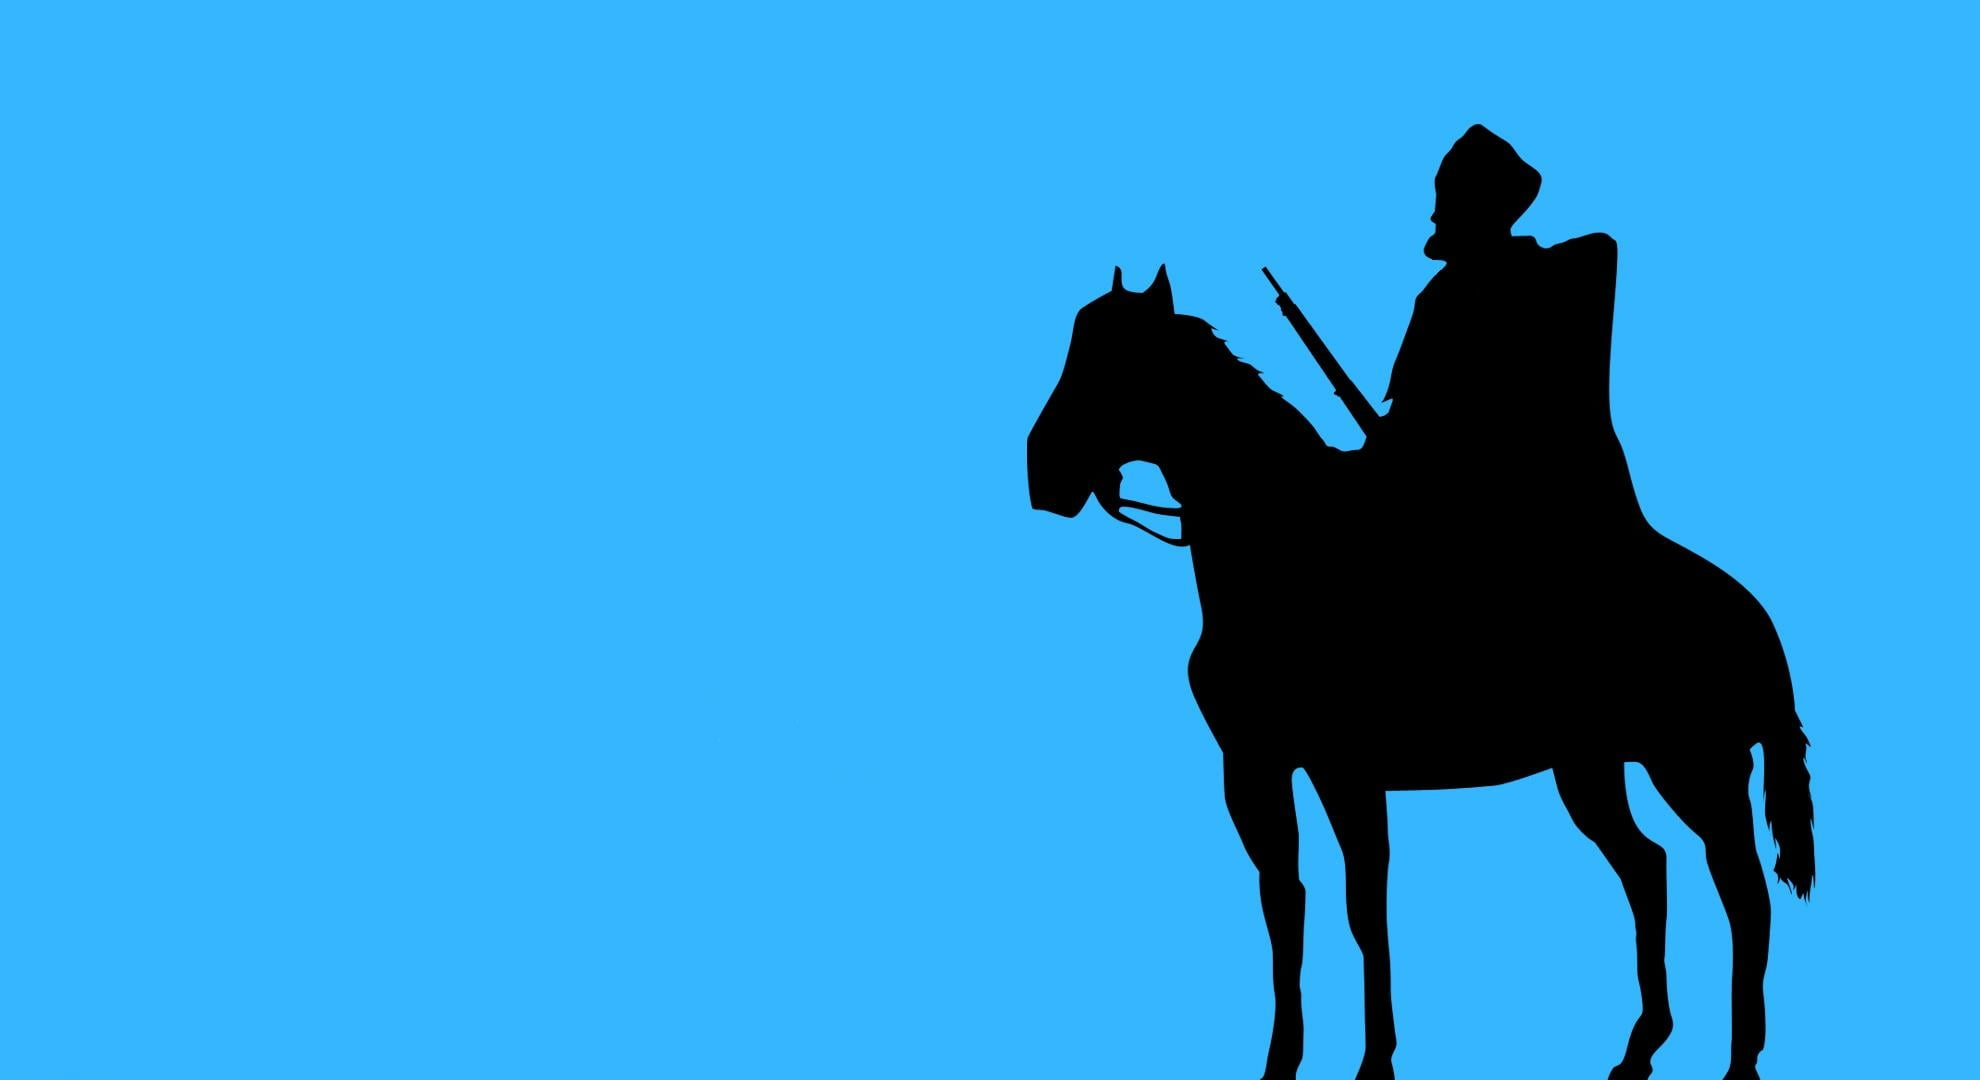 1980x1080 Person Riding Horse Silhouette Hd Wallpaper Wallpaper Flare